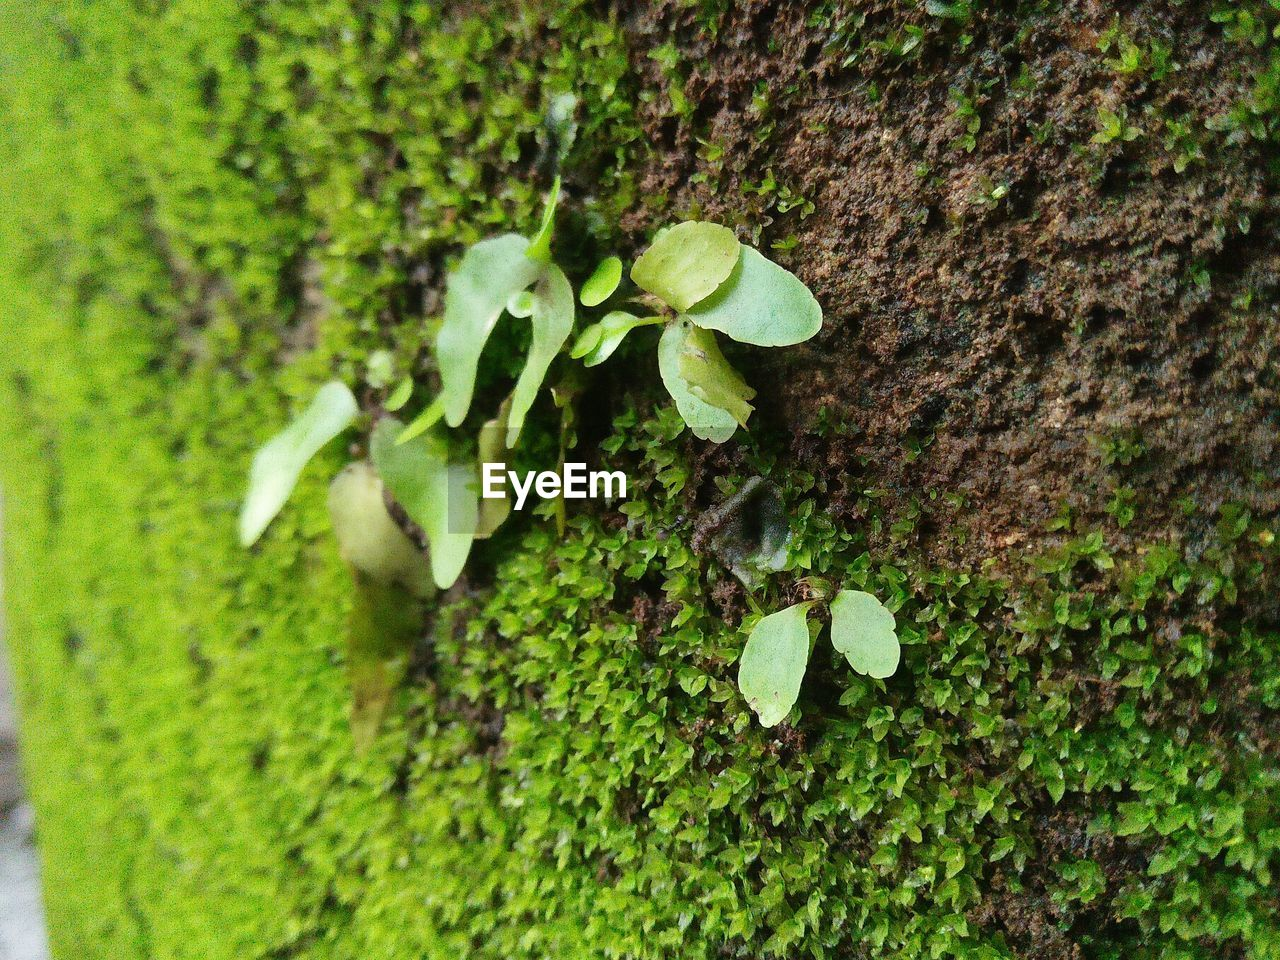 green color, growth, plant, plant part, leaf, close-up, beauty in nature, nature, no people, day, selective focus, freshness, outdoors, high angle view, vulnerability, fragility, tranquility, trunk, tree trunk, beginnings